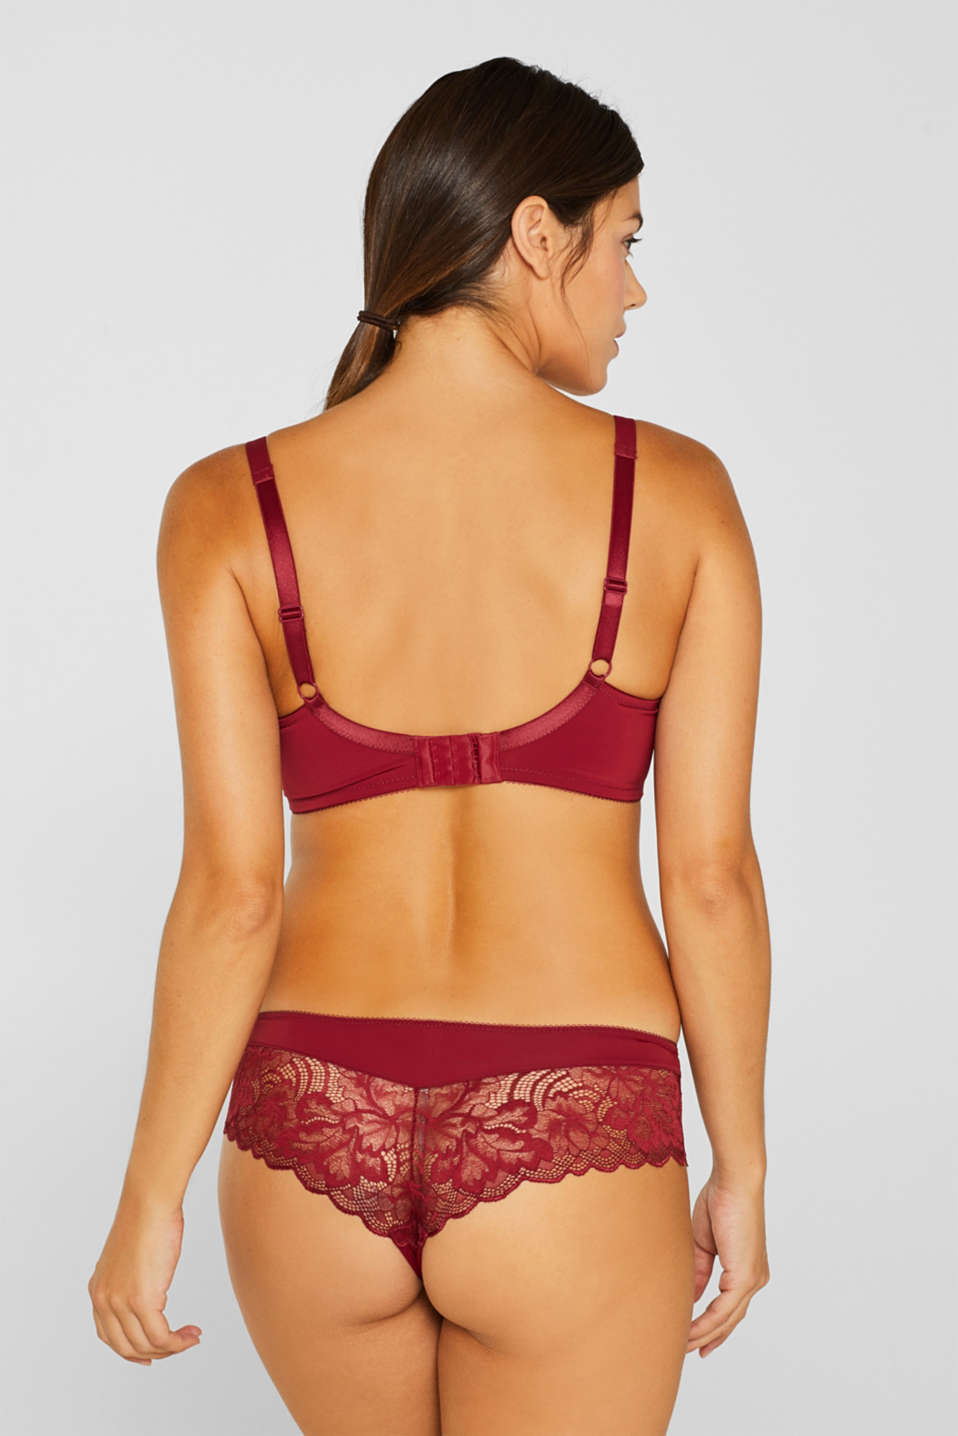 Padded lace bra for larger cup sizes, DARK RED, detail image number 1